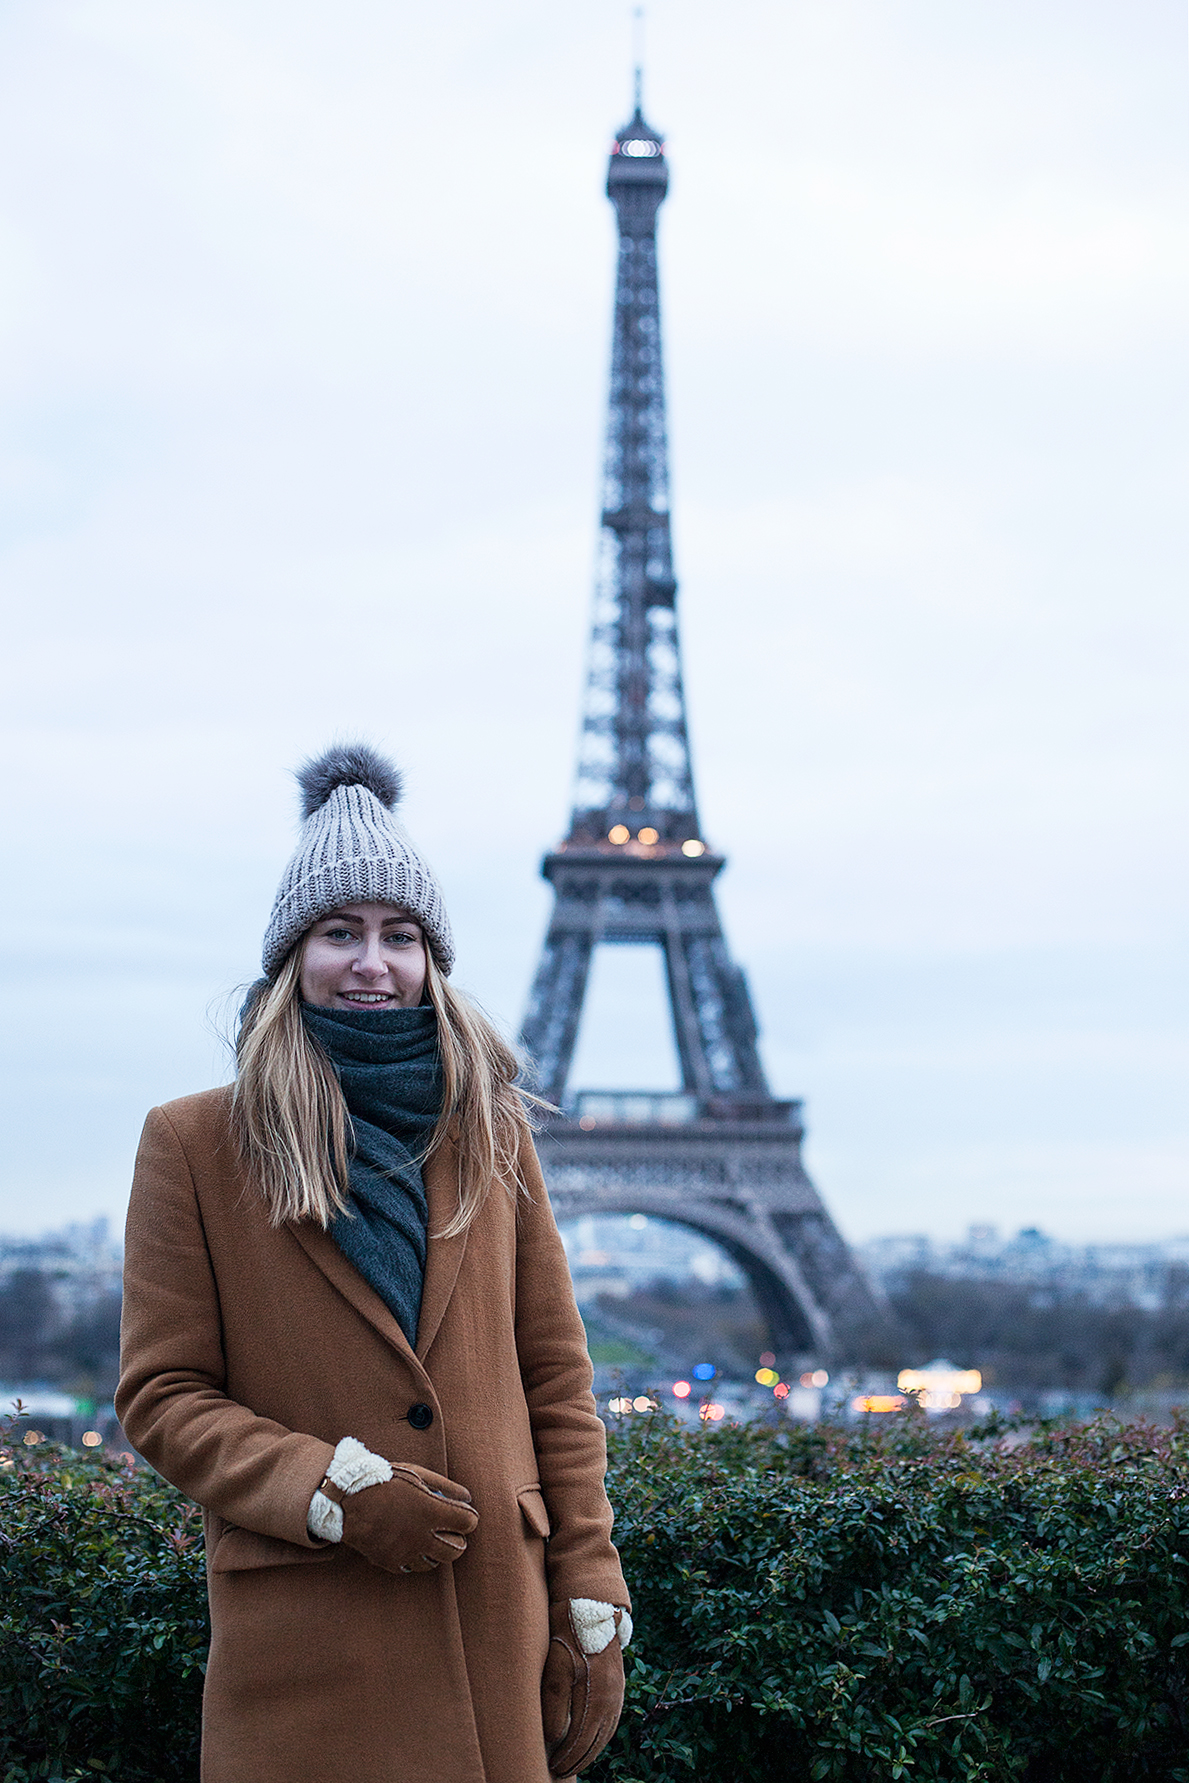 Myself & The Eiffel Tower - shot by Lee